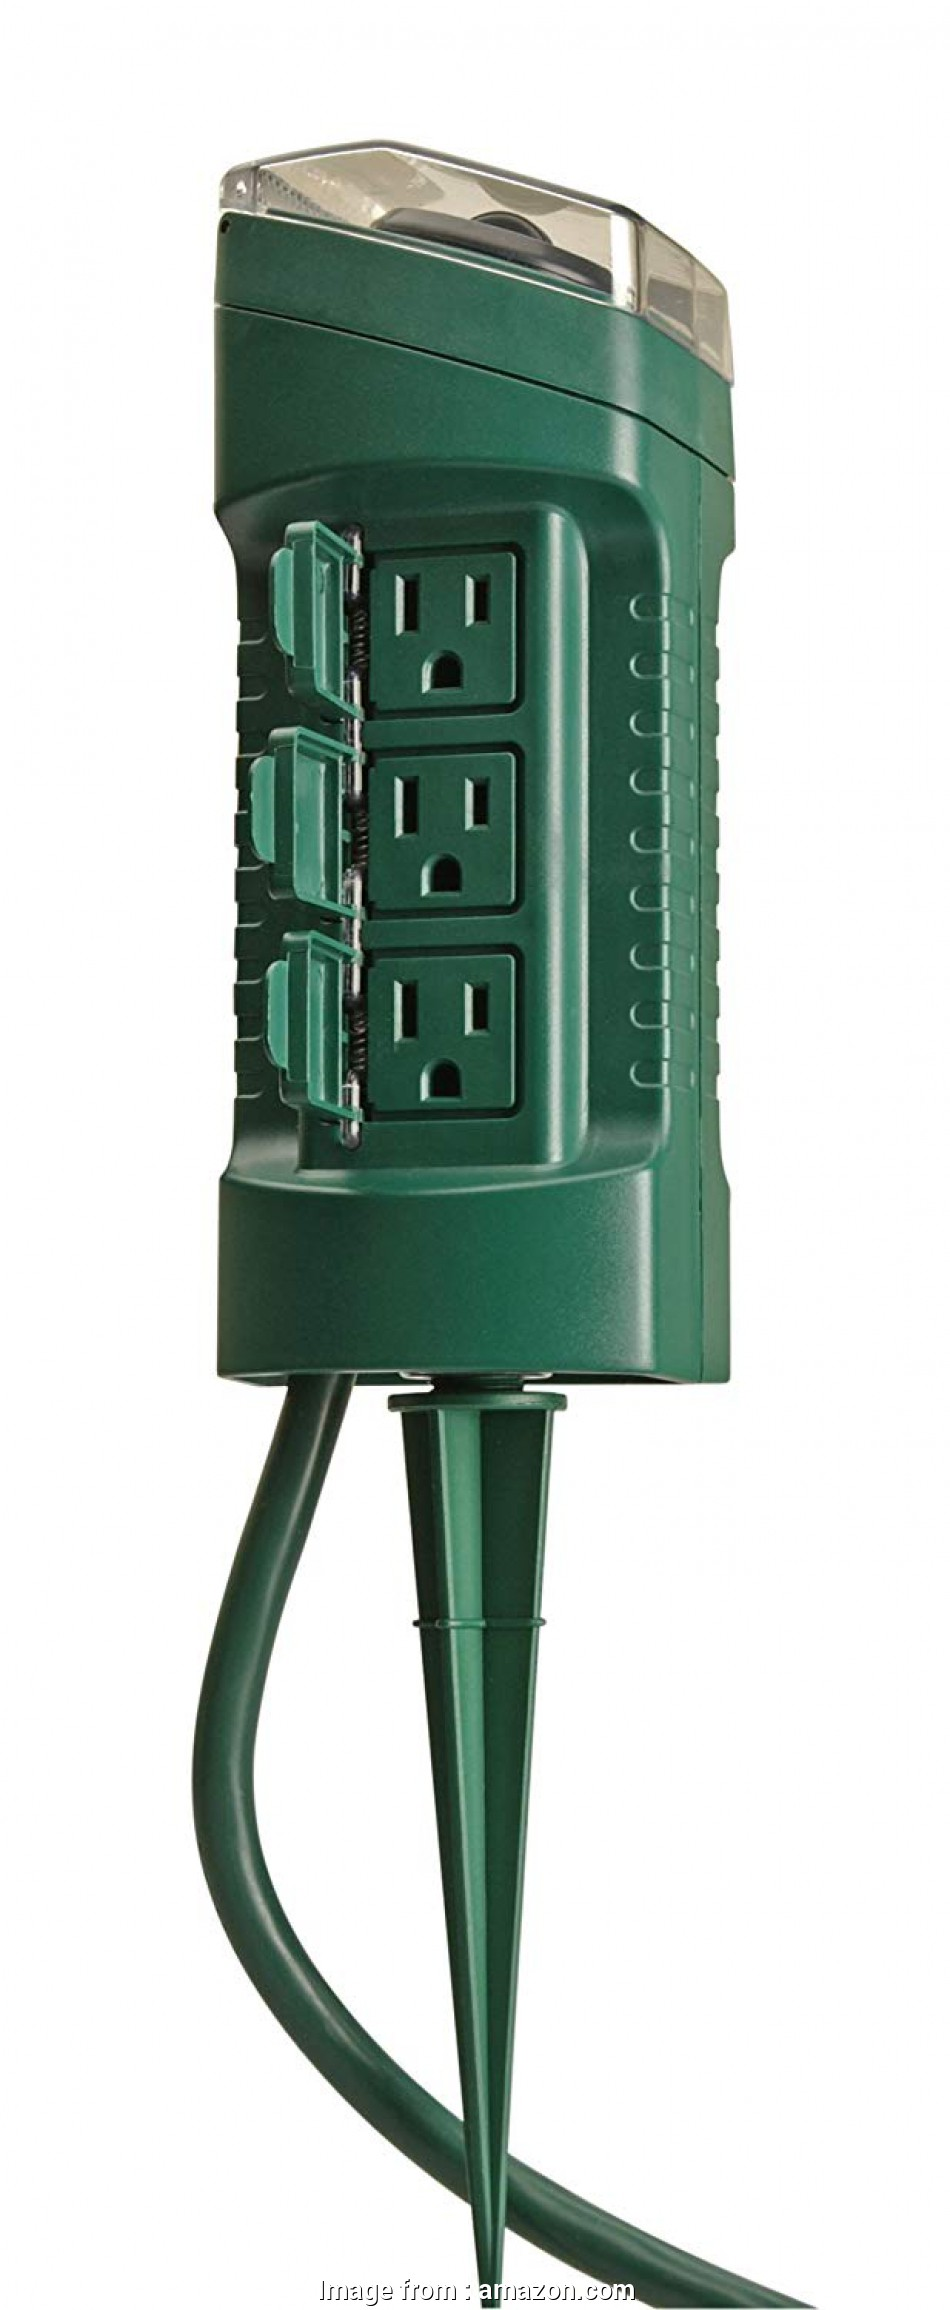 how to install an electrical outlet outdoors Woods 13547WD Outdoor Yard Stake with Photocell, Built-In Timer, 6 Grounded Outlets,, Cord, Green, Outdoor Timer, Amazon.com 8 Creative How To Install An Electrical Outlet Outdoors Photos